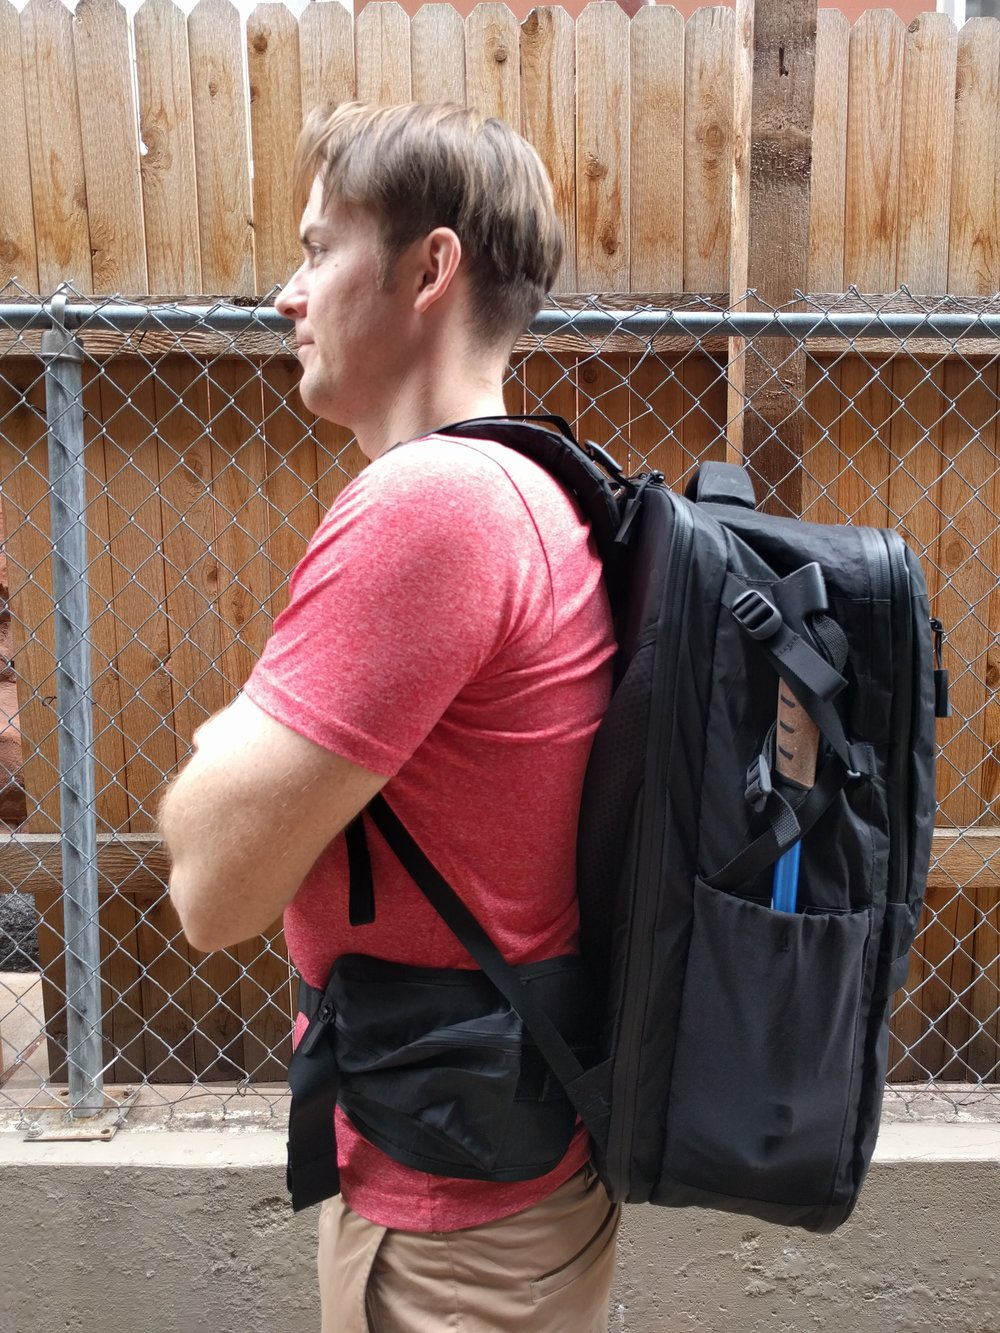 Here you can see the Tortuga Outbreaker with the shoulder straps at their maximum height, keeping the weight of the bag centrally in my mid back. Unfortunately this means the waist belt is now too high and getting the weight of the bag on my hips impossible. Comfortable shoulders, but no weight on my hips.